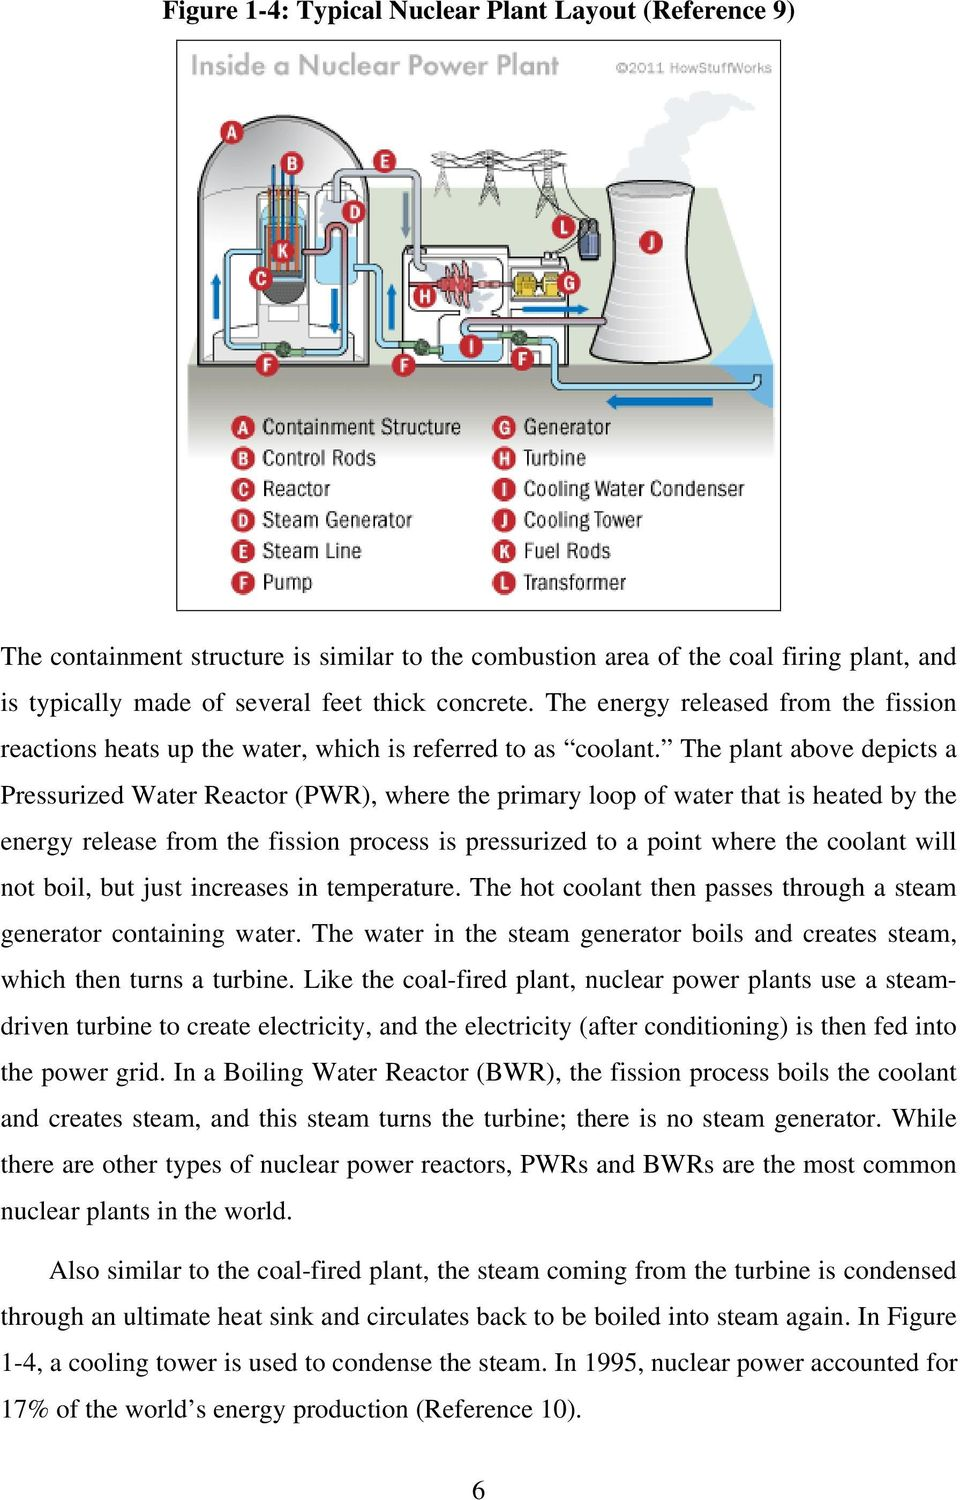 Comparative Assessment Of Coal Fired And Nuclear Power Plants Pdf Plant Diagram The Above Depicts A Pressurized Water Reactor Pwr Where Primary Loop